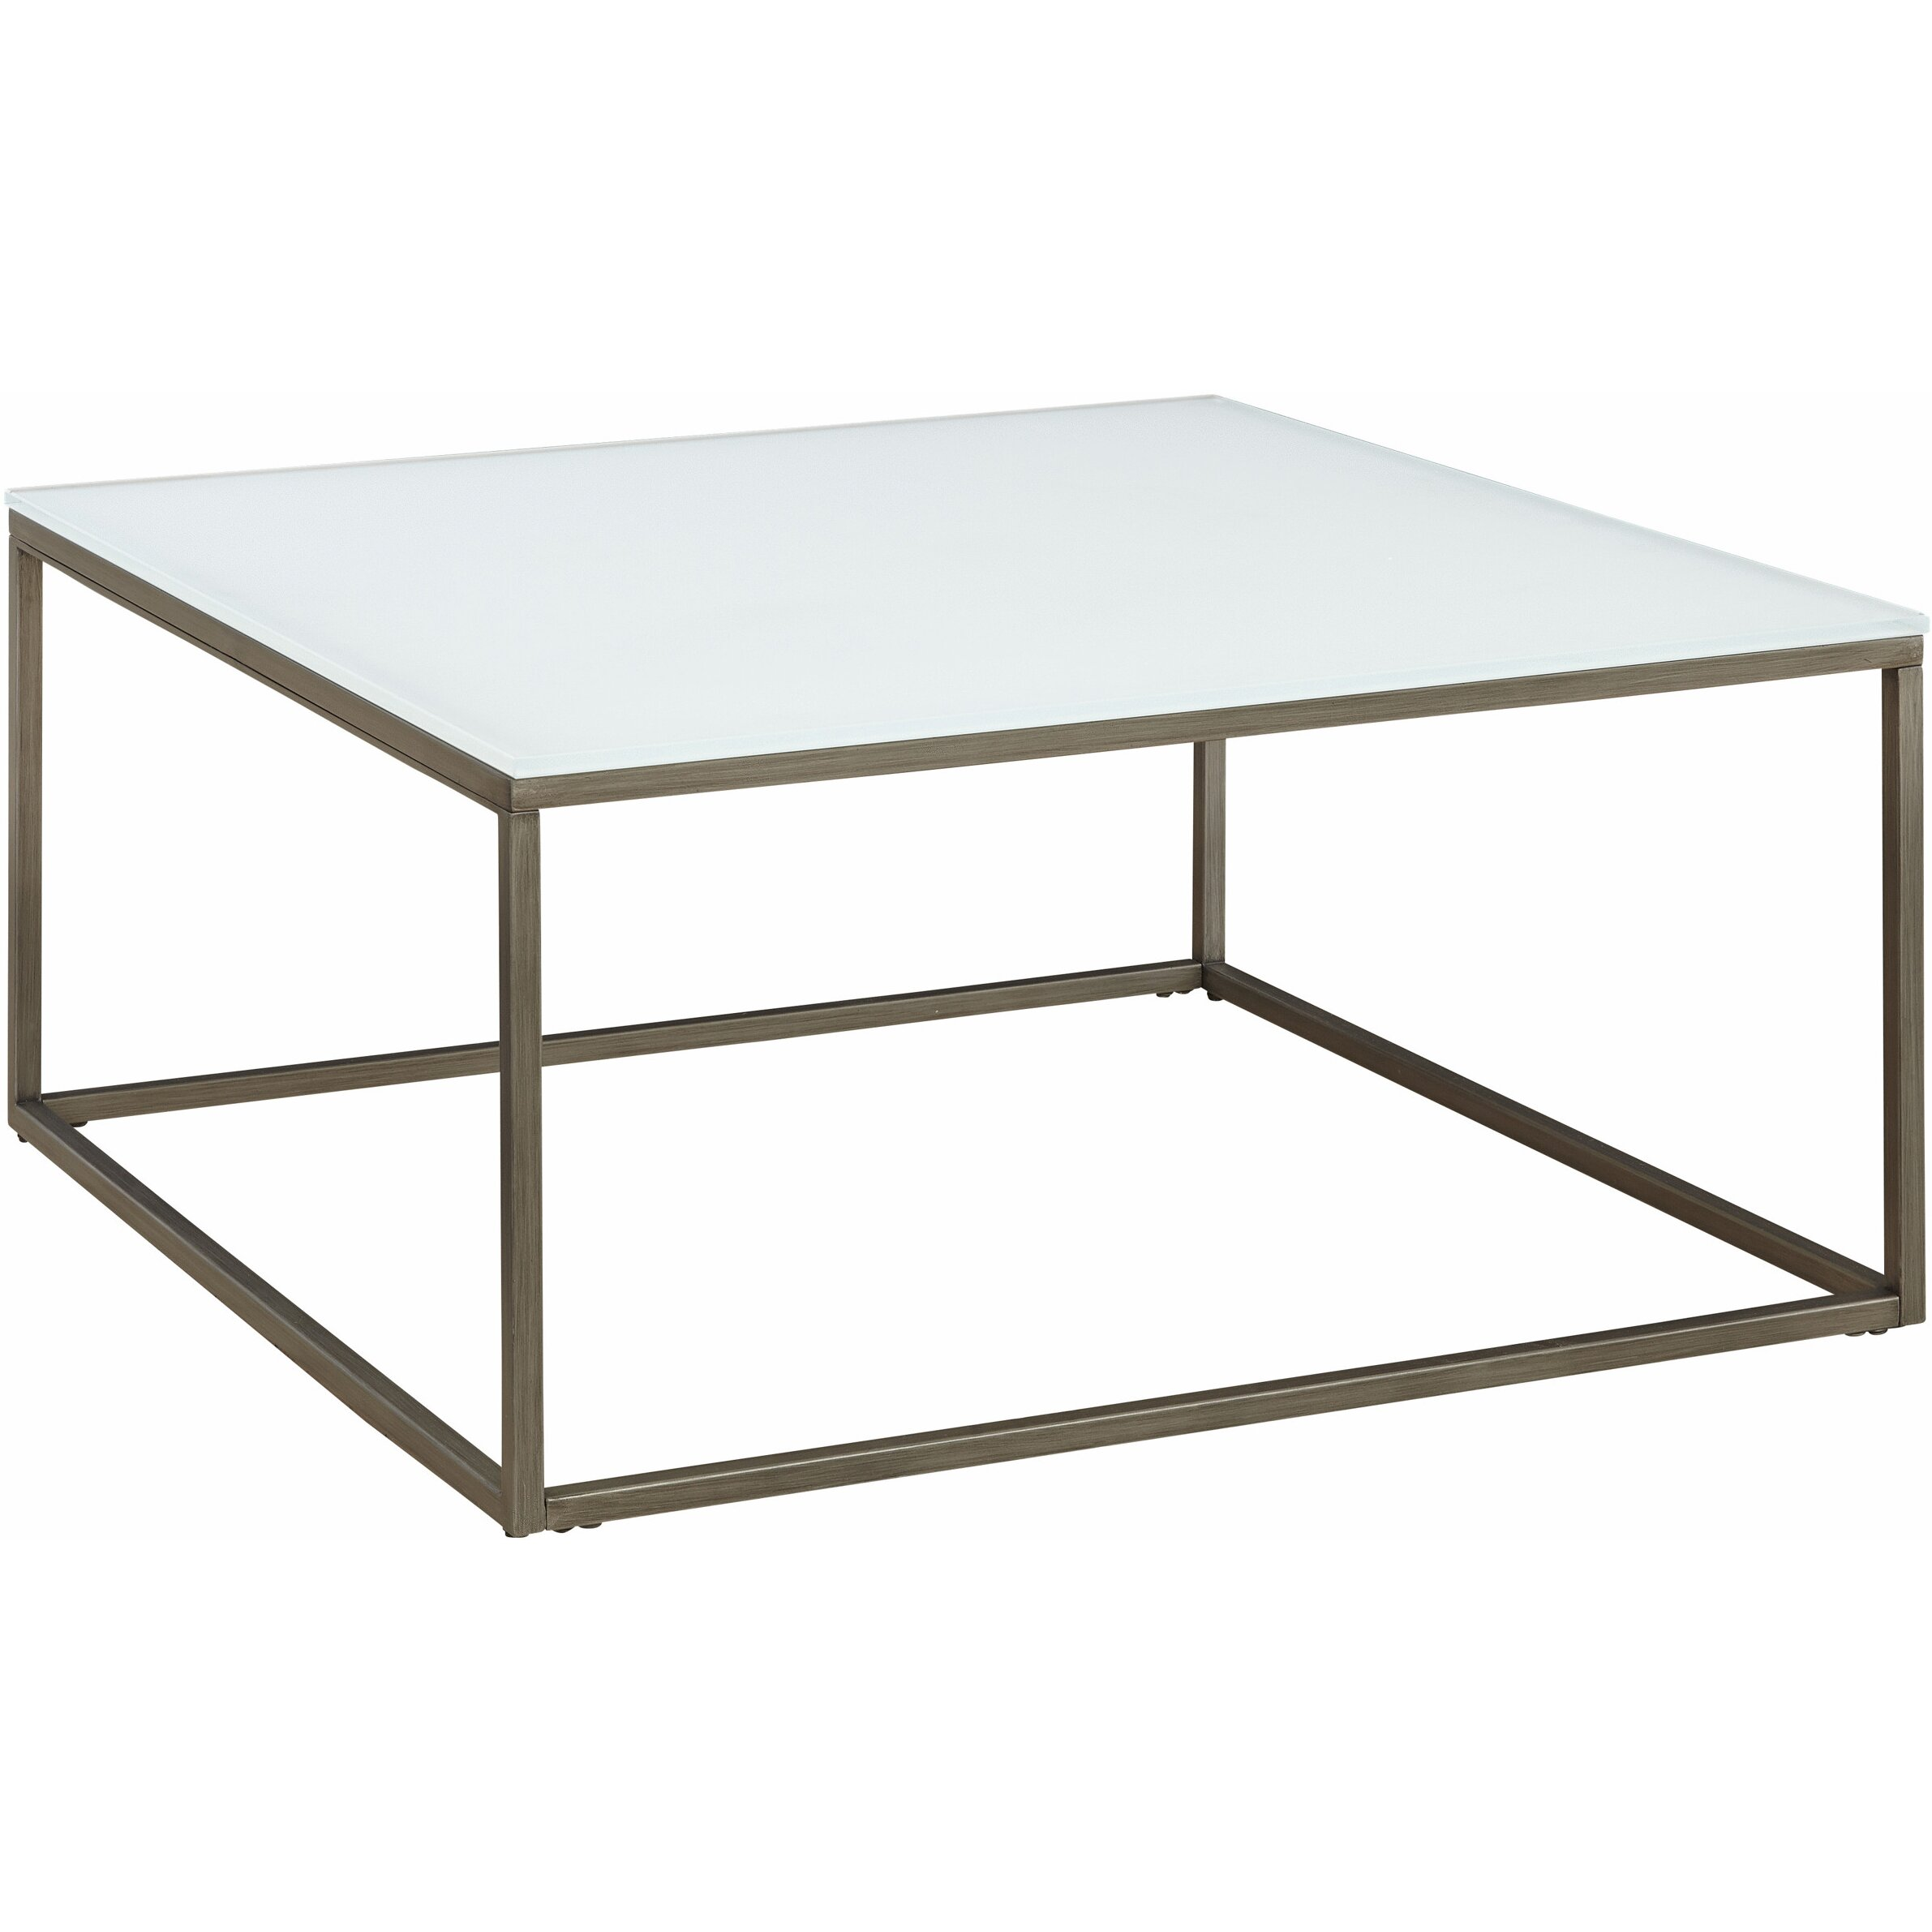 Square Coffee Table: Alana Square Coffee Table